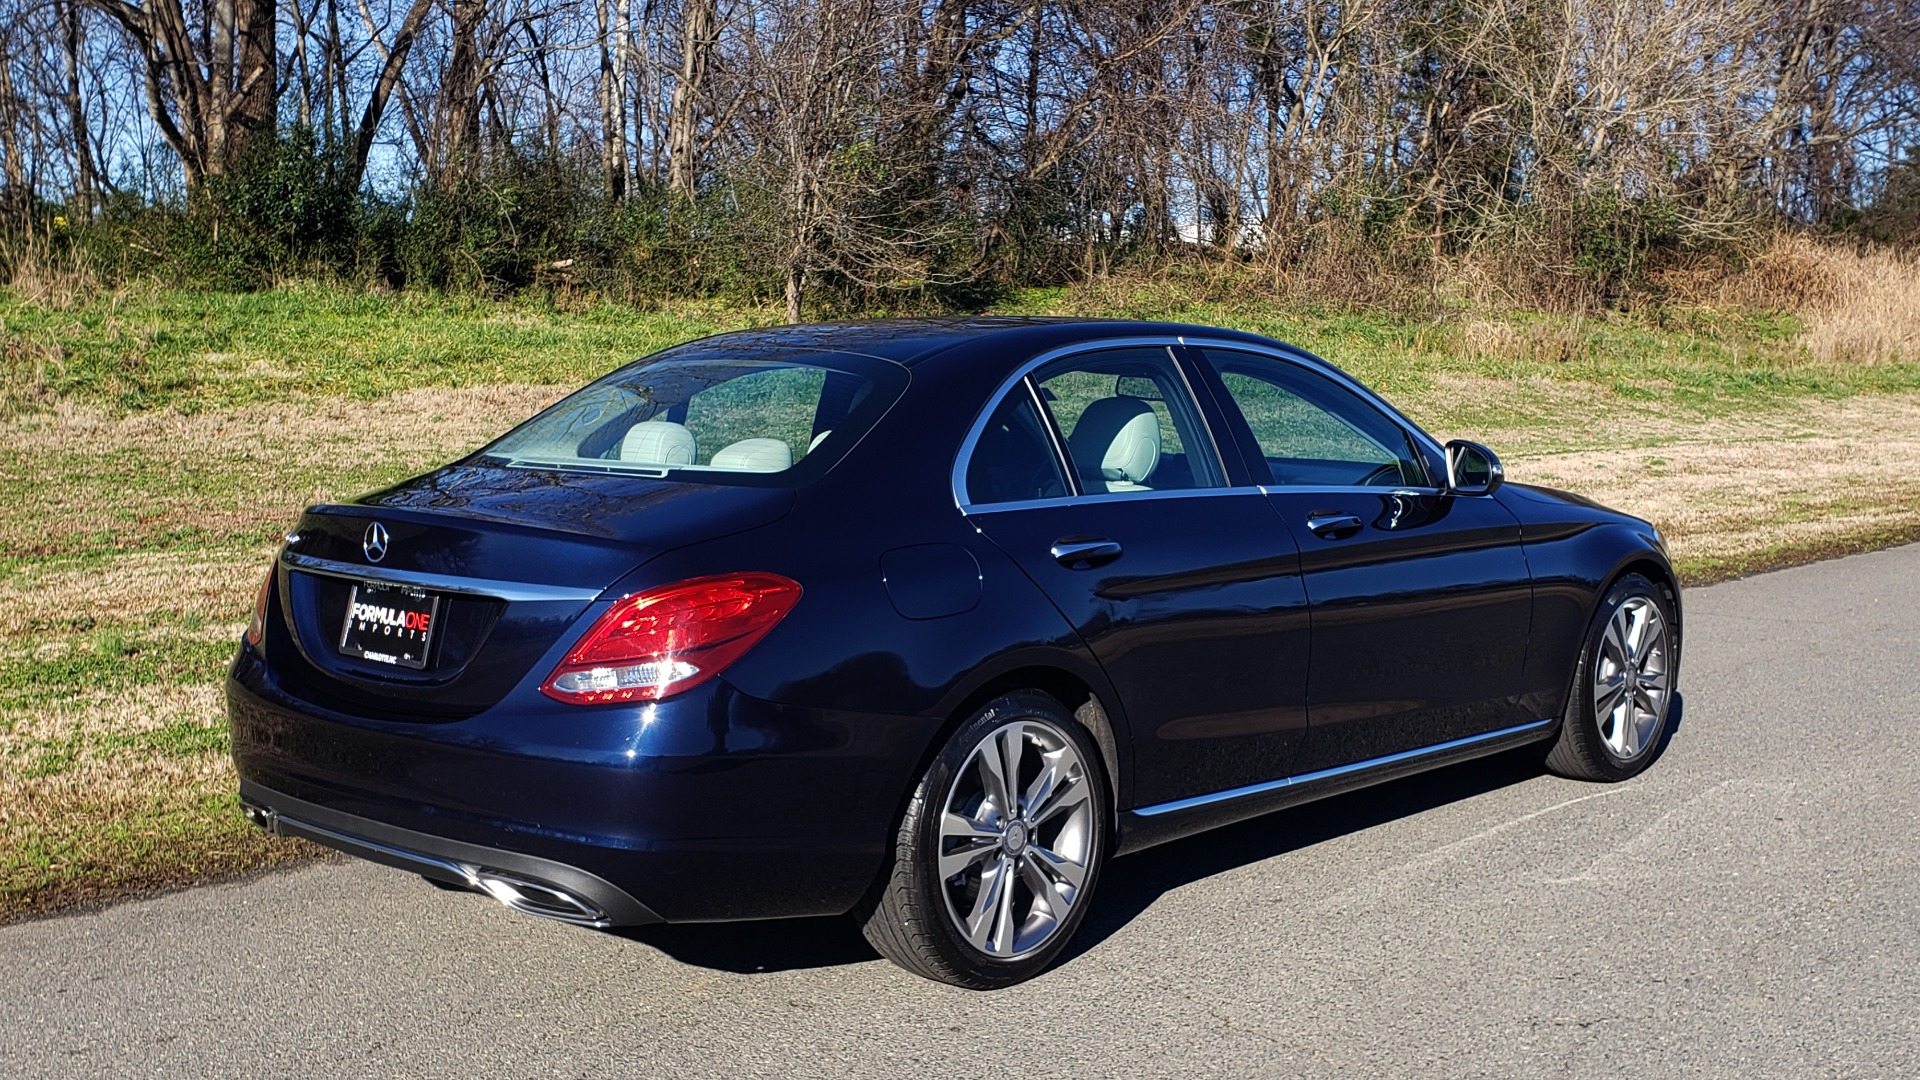 Used 2016 Mercedes-Benz C-Class C 300 PREMIUM / PANO-ROOF / HTD STS / BSA / REARVIEW for sale Sold at Formula Imports in Charlotte NC 28227 7